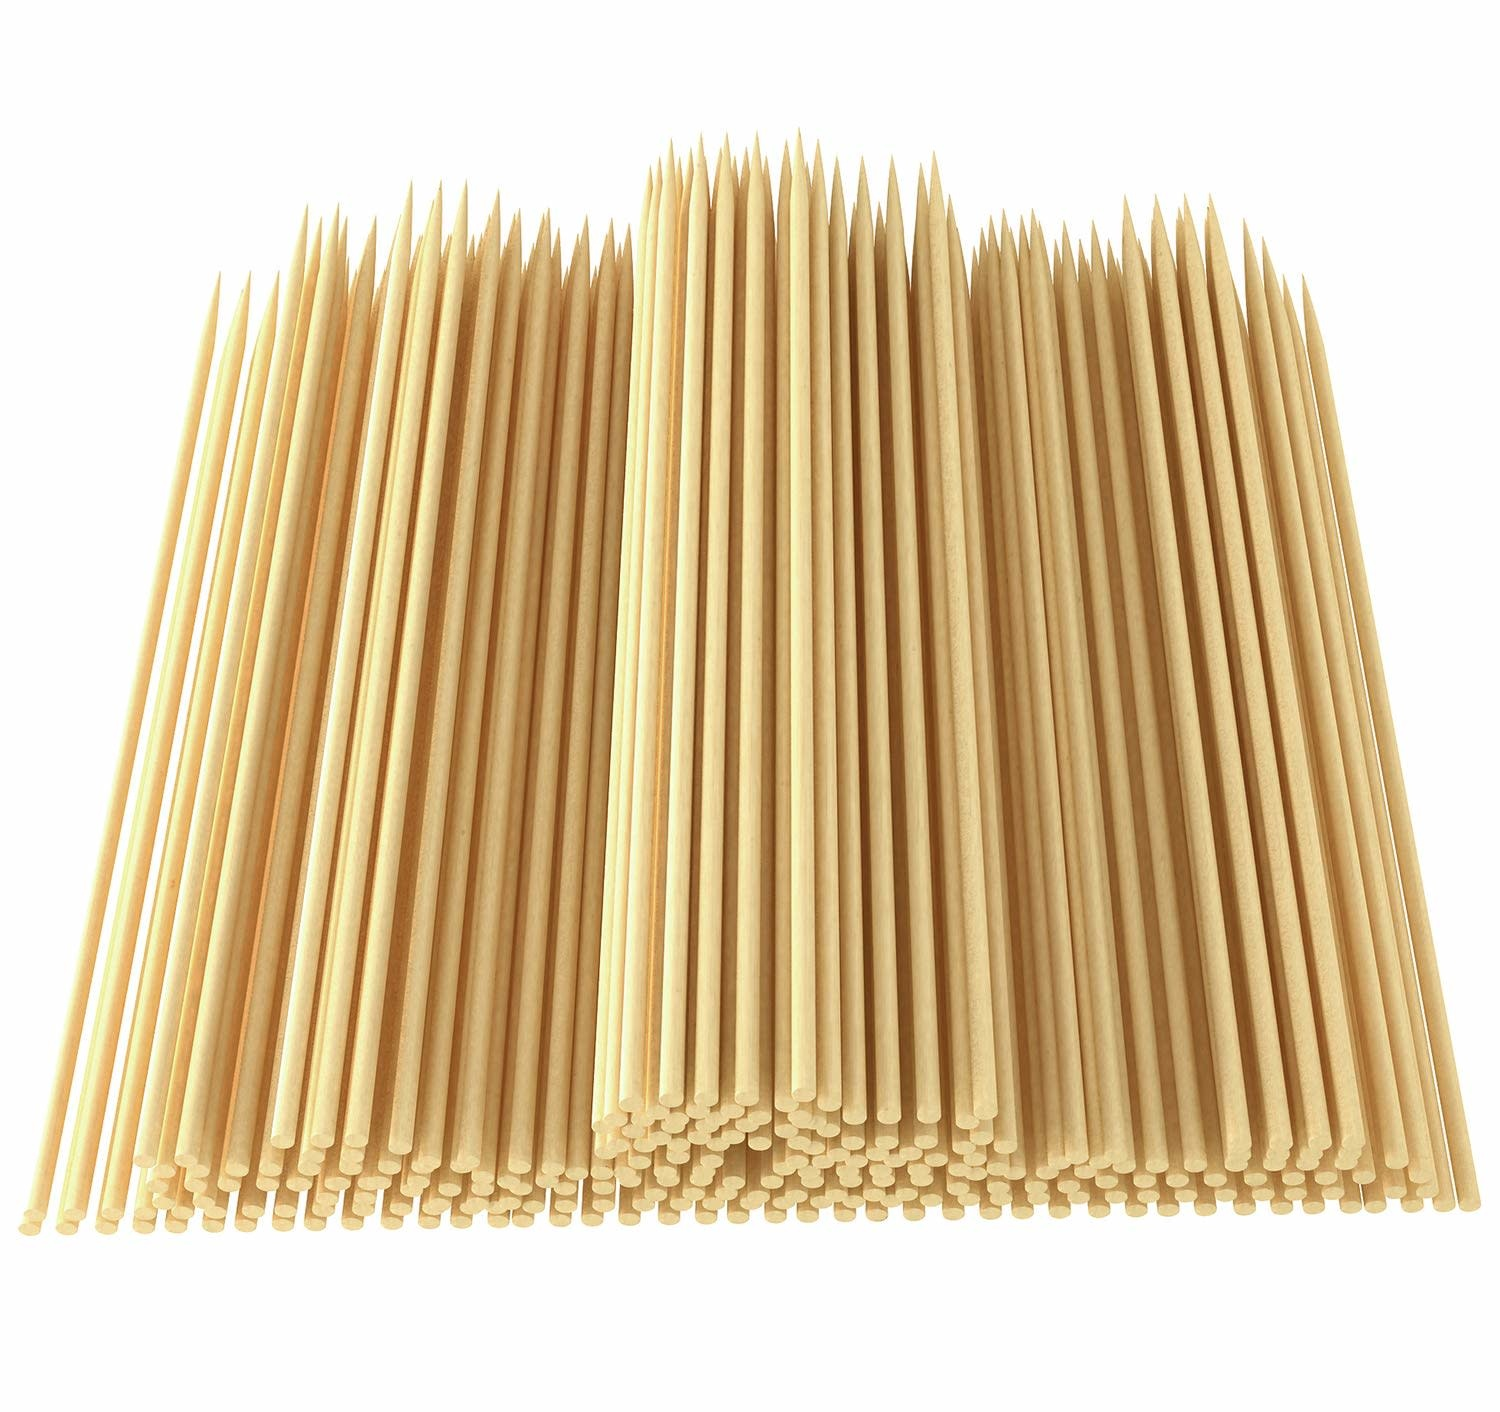 Wooden Skewers 50 pack